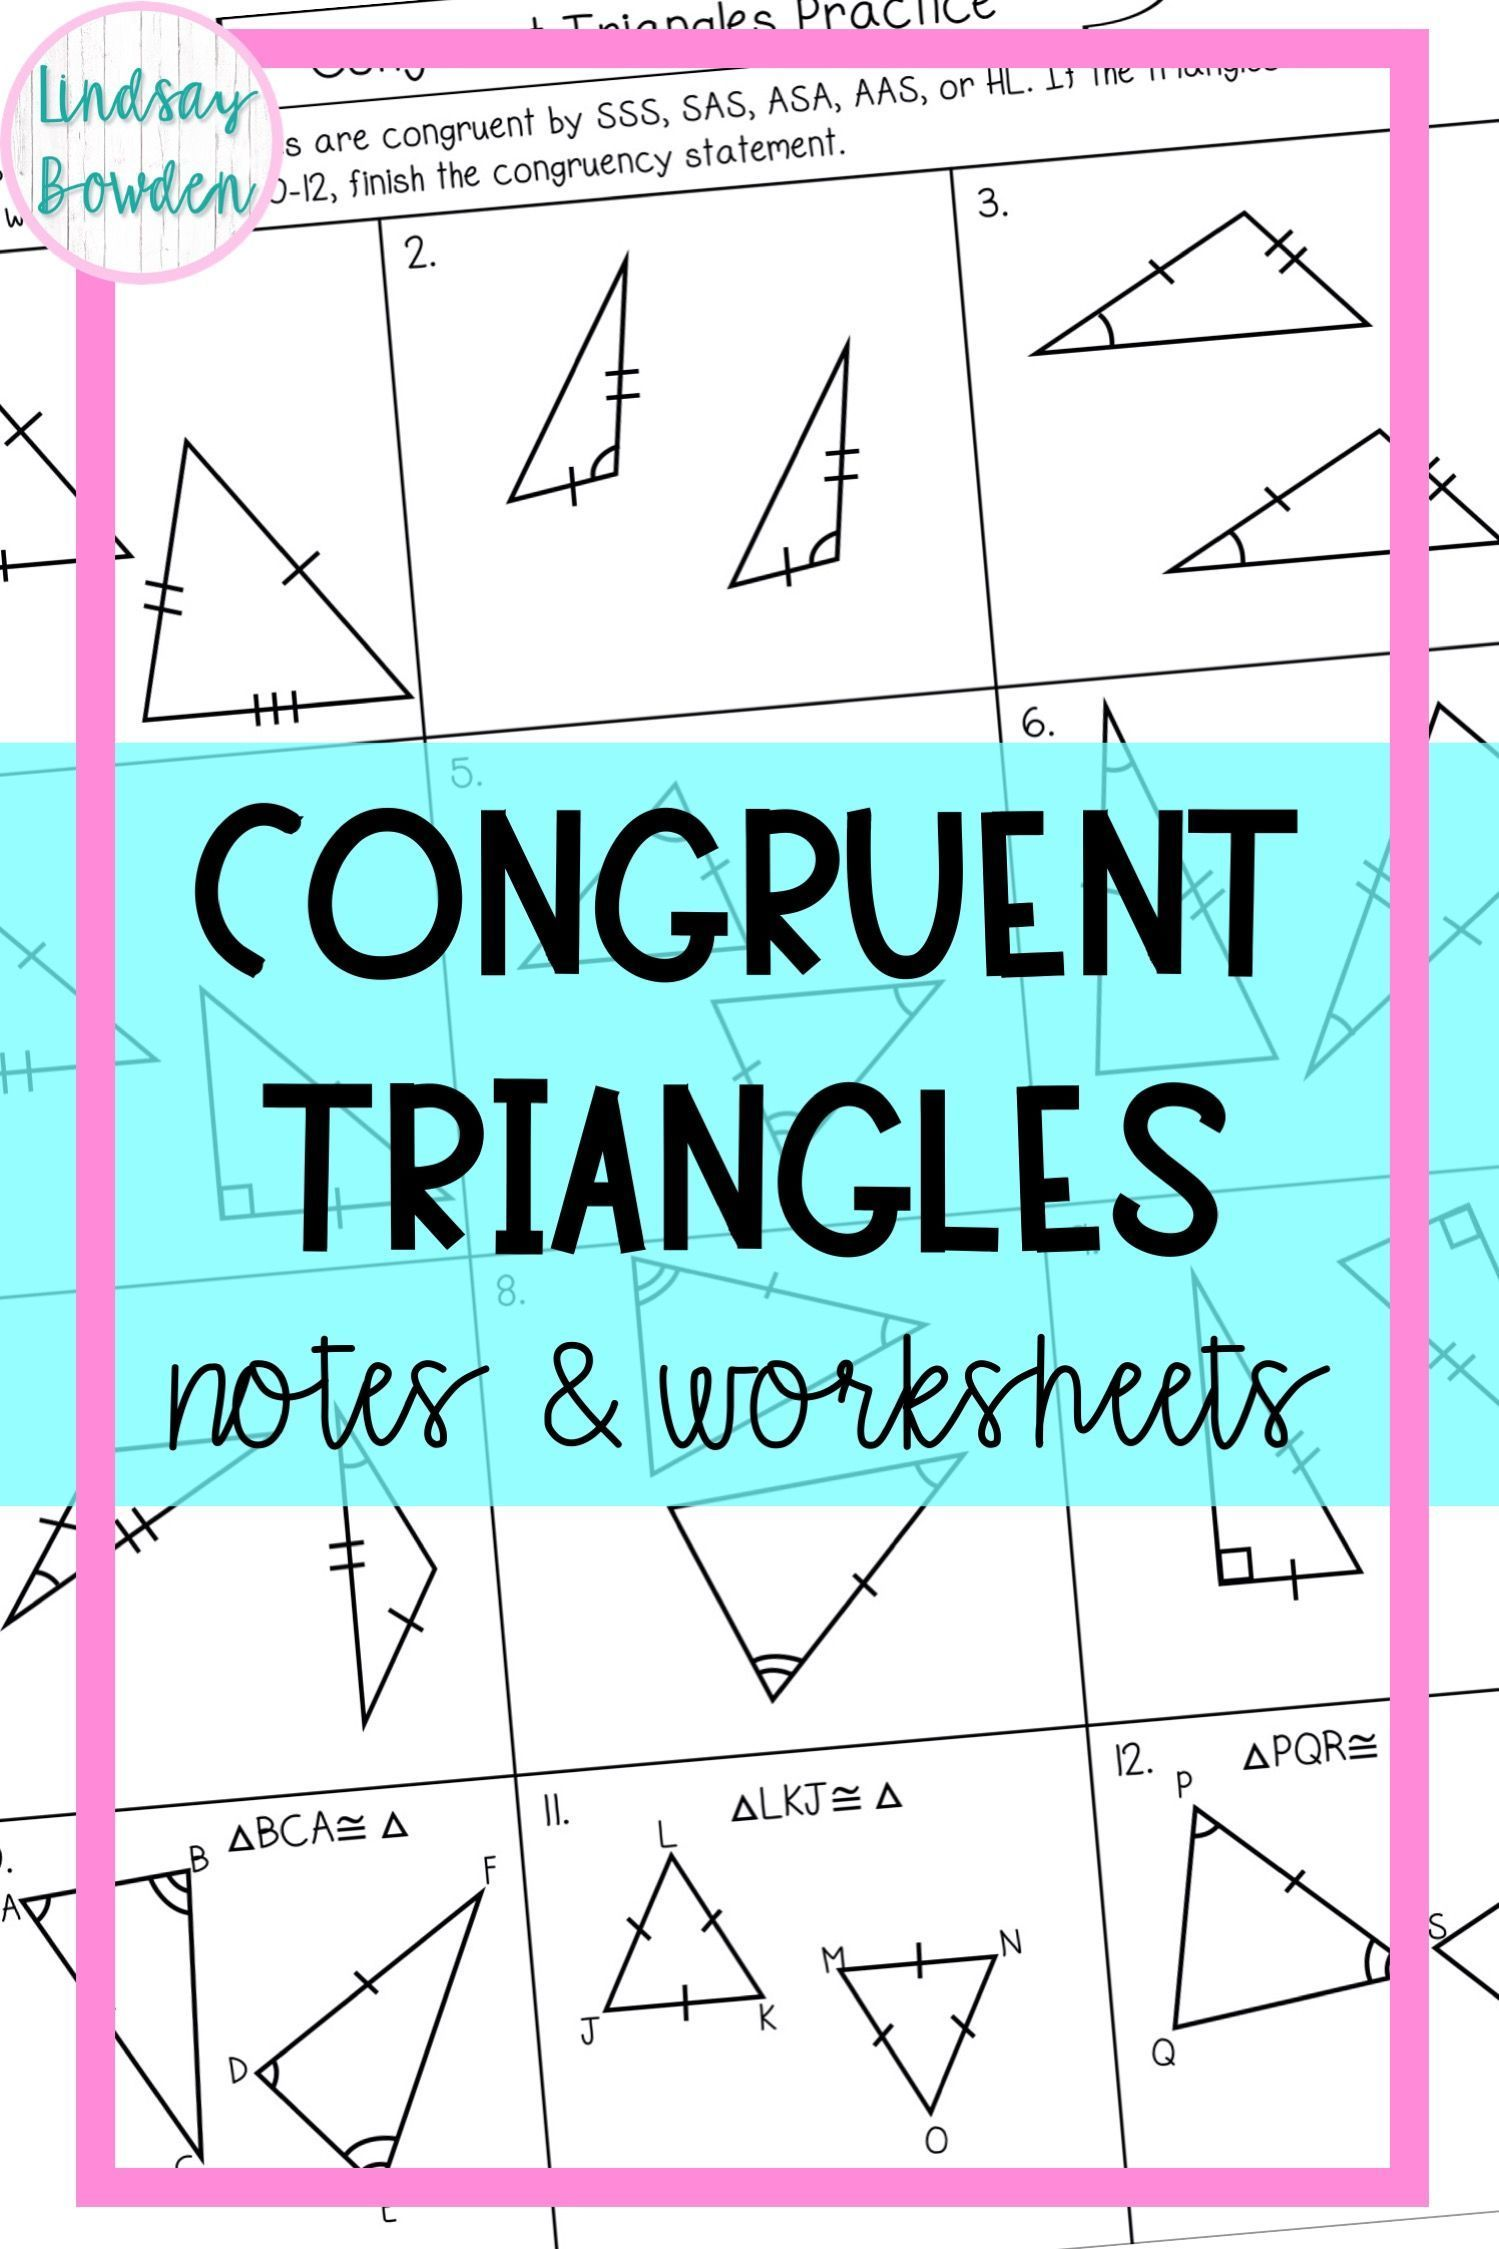 Congruent Triangles Notes And Worksheets High School Geometry Notes Geometry Lessons Congruent Triangles Worksheet